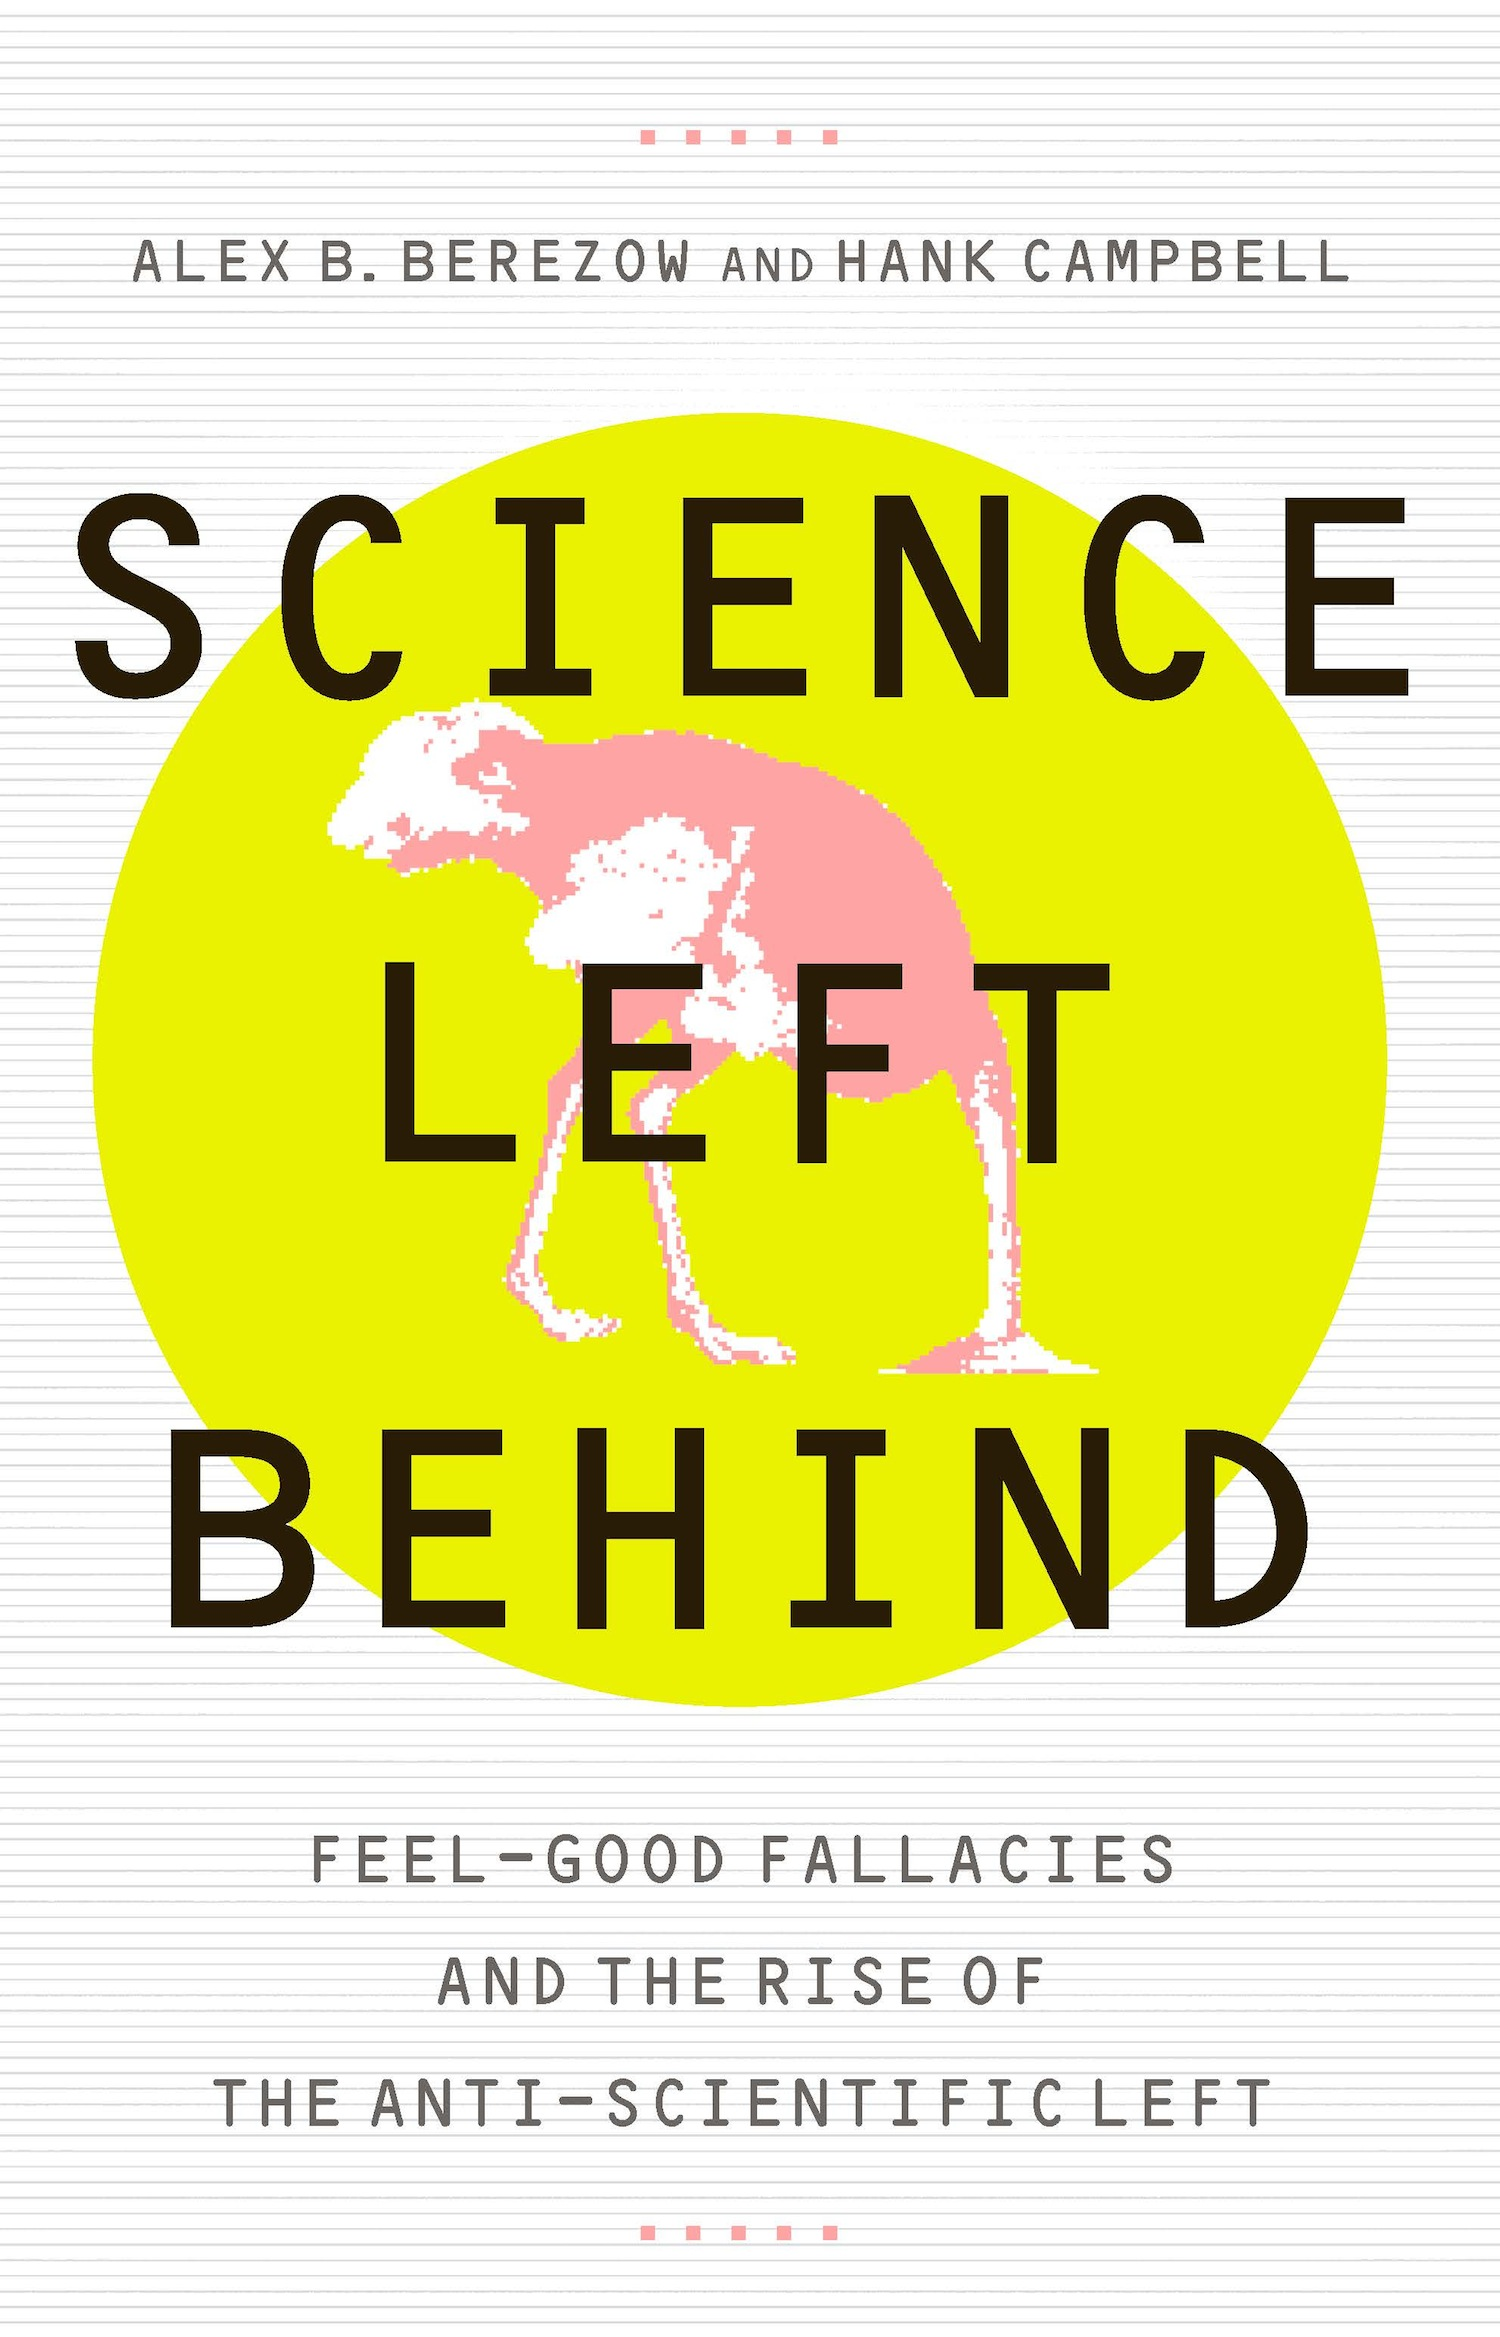 Science Left Behind